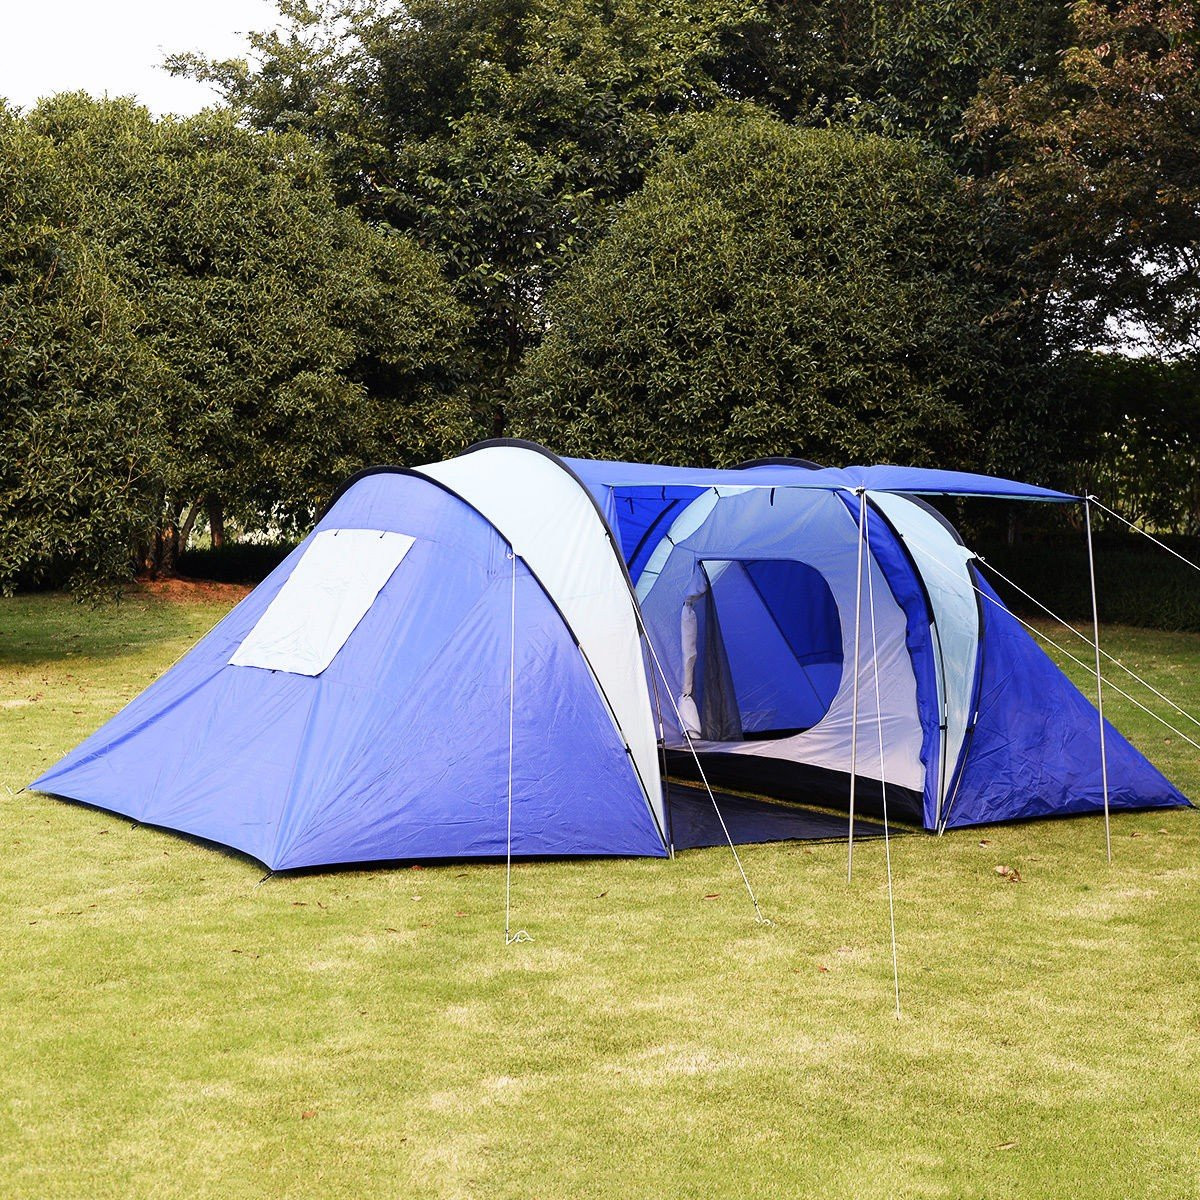 6-8 Person/man Waterproof Camp 2+1 Room Hiking Camping Tunnel Family Tent by Giantex   B00PLDWDU6